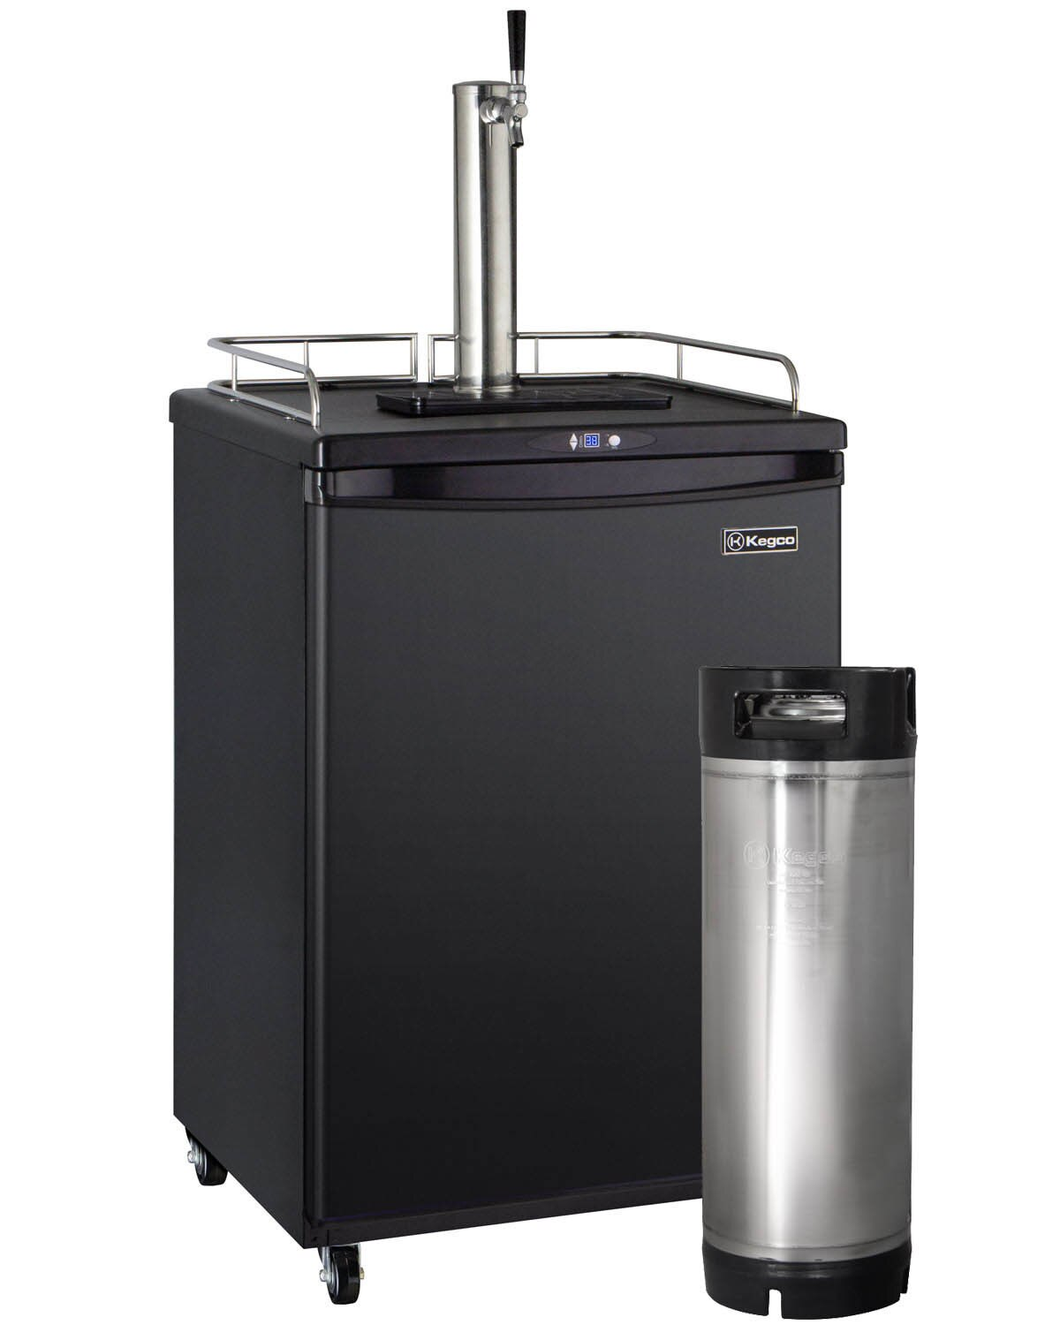 DIGITAL COMMERCIAL GRADE HOME BREW KEGERATOR WITH 5 GALLON KEG - BLACK CABINET WITH BLACK DOOR